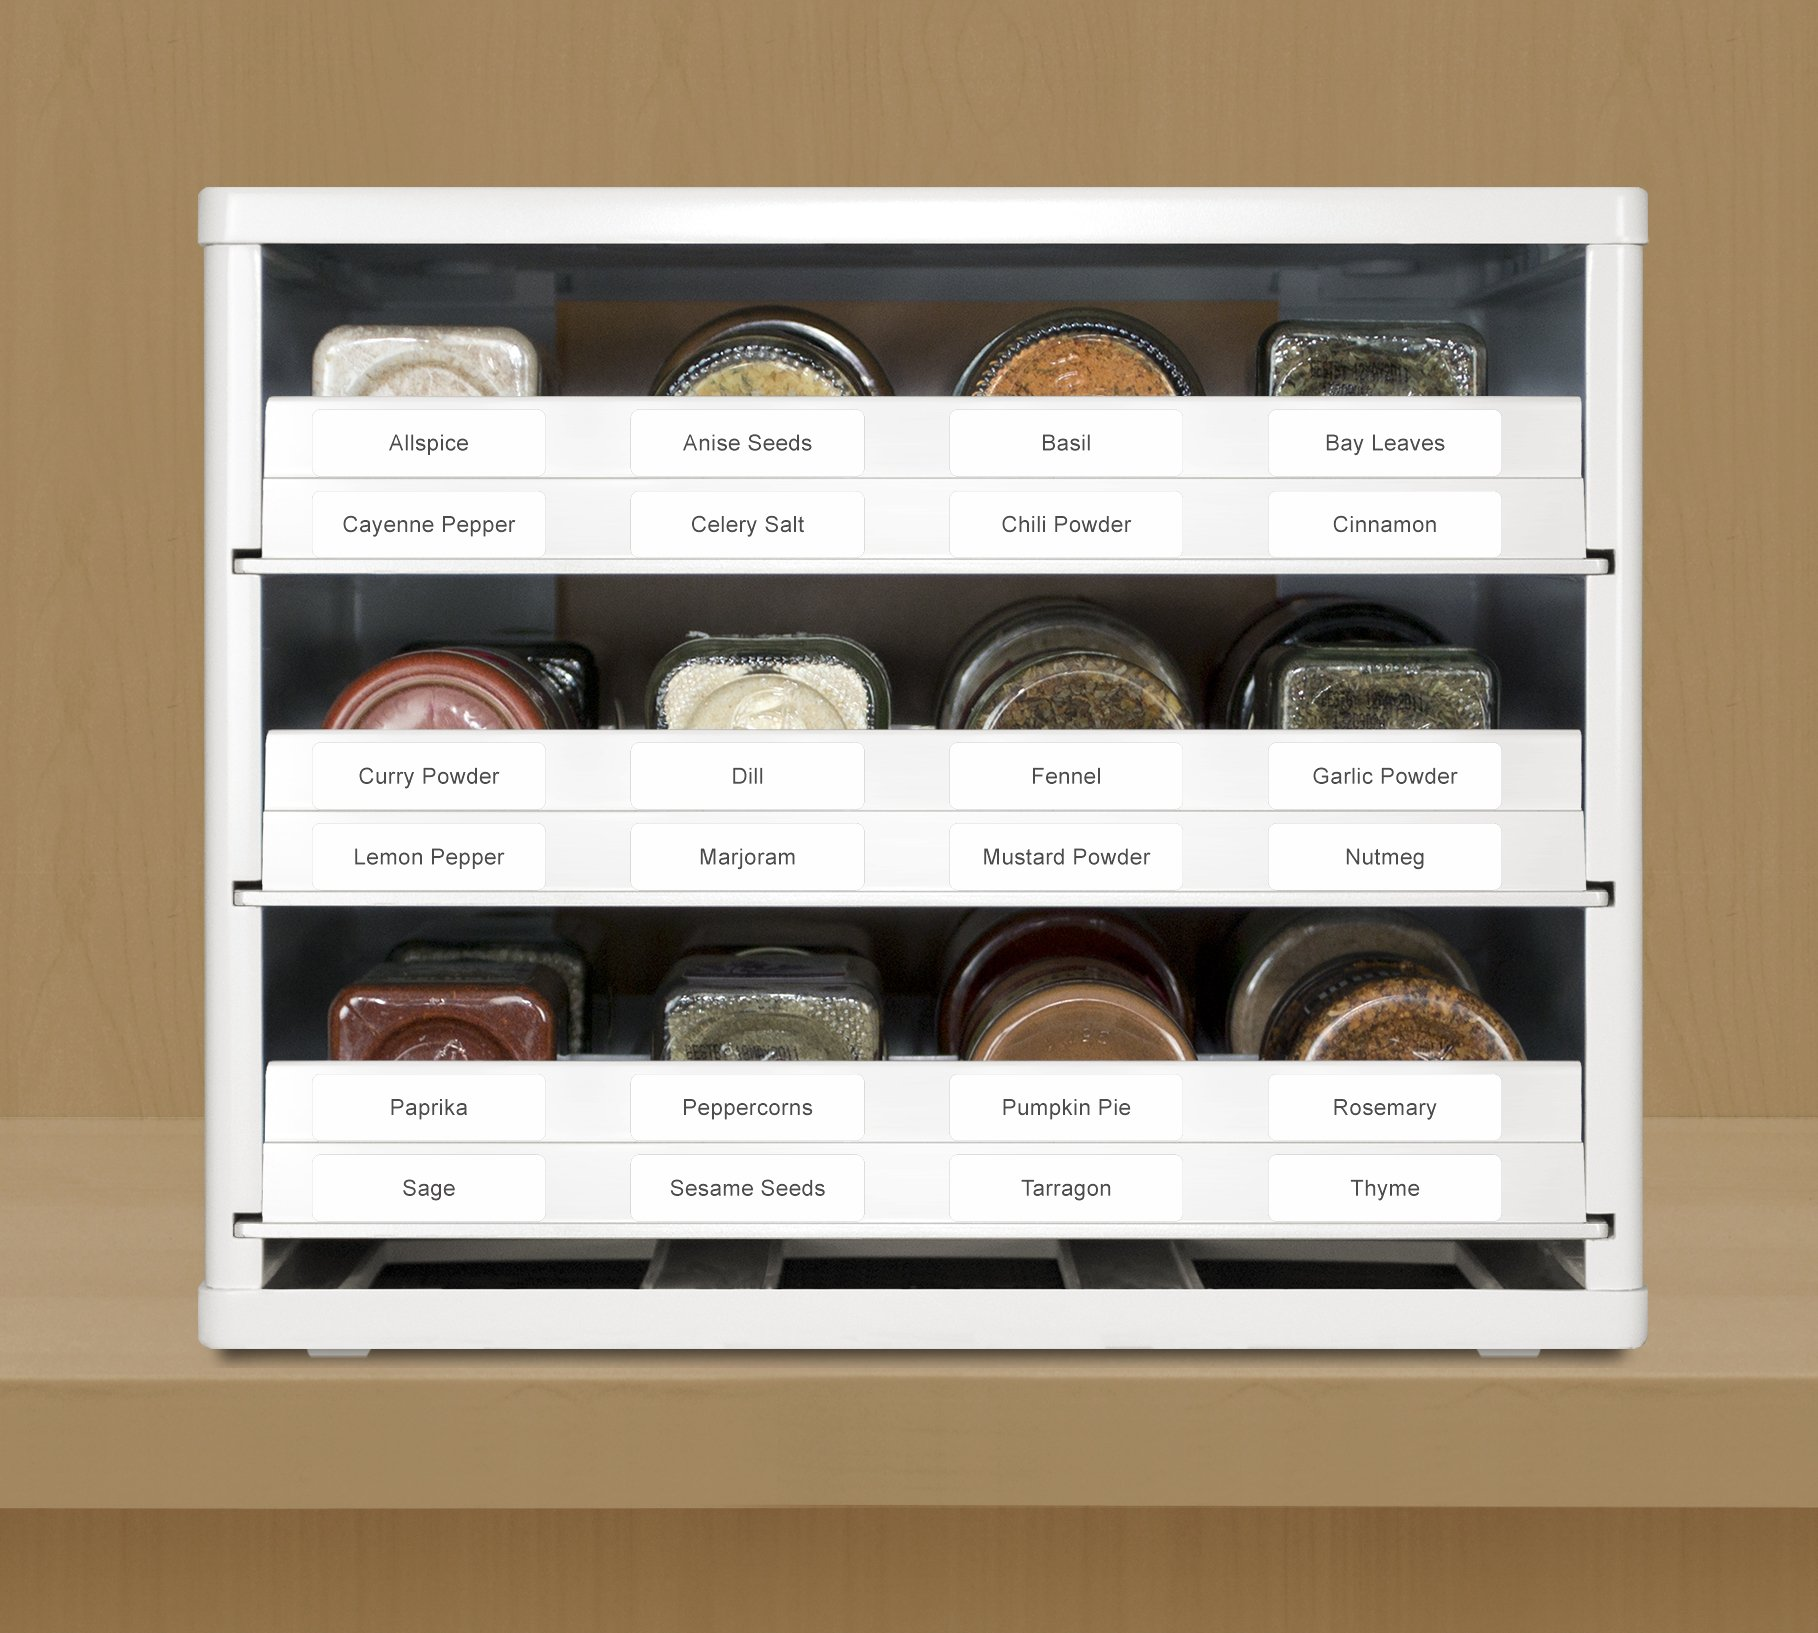 YouCopia Classic SpiceStack 24-Bottle Spice Organizer with Universal Drawers, White by YouCopia (Image #6)